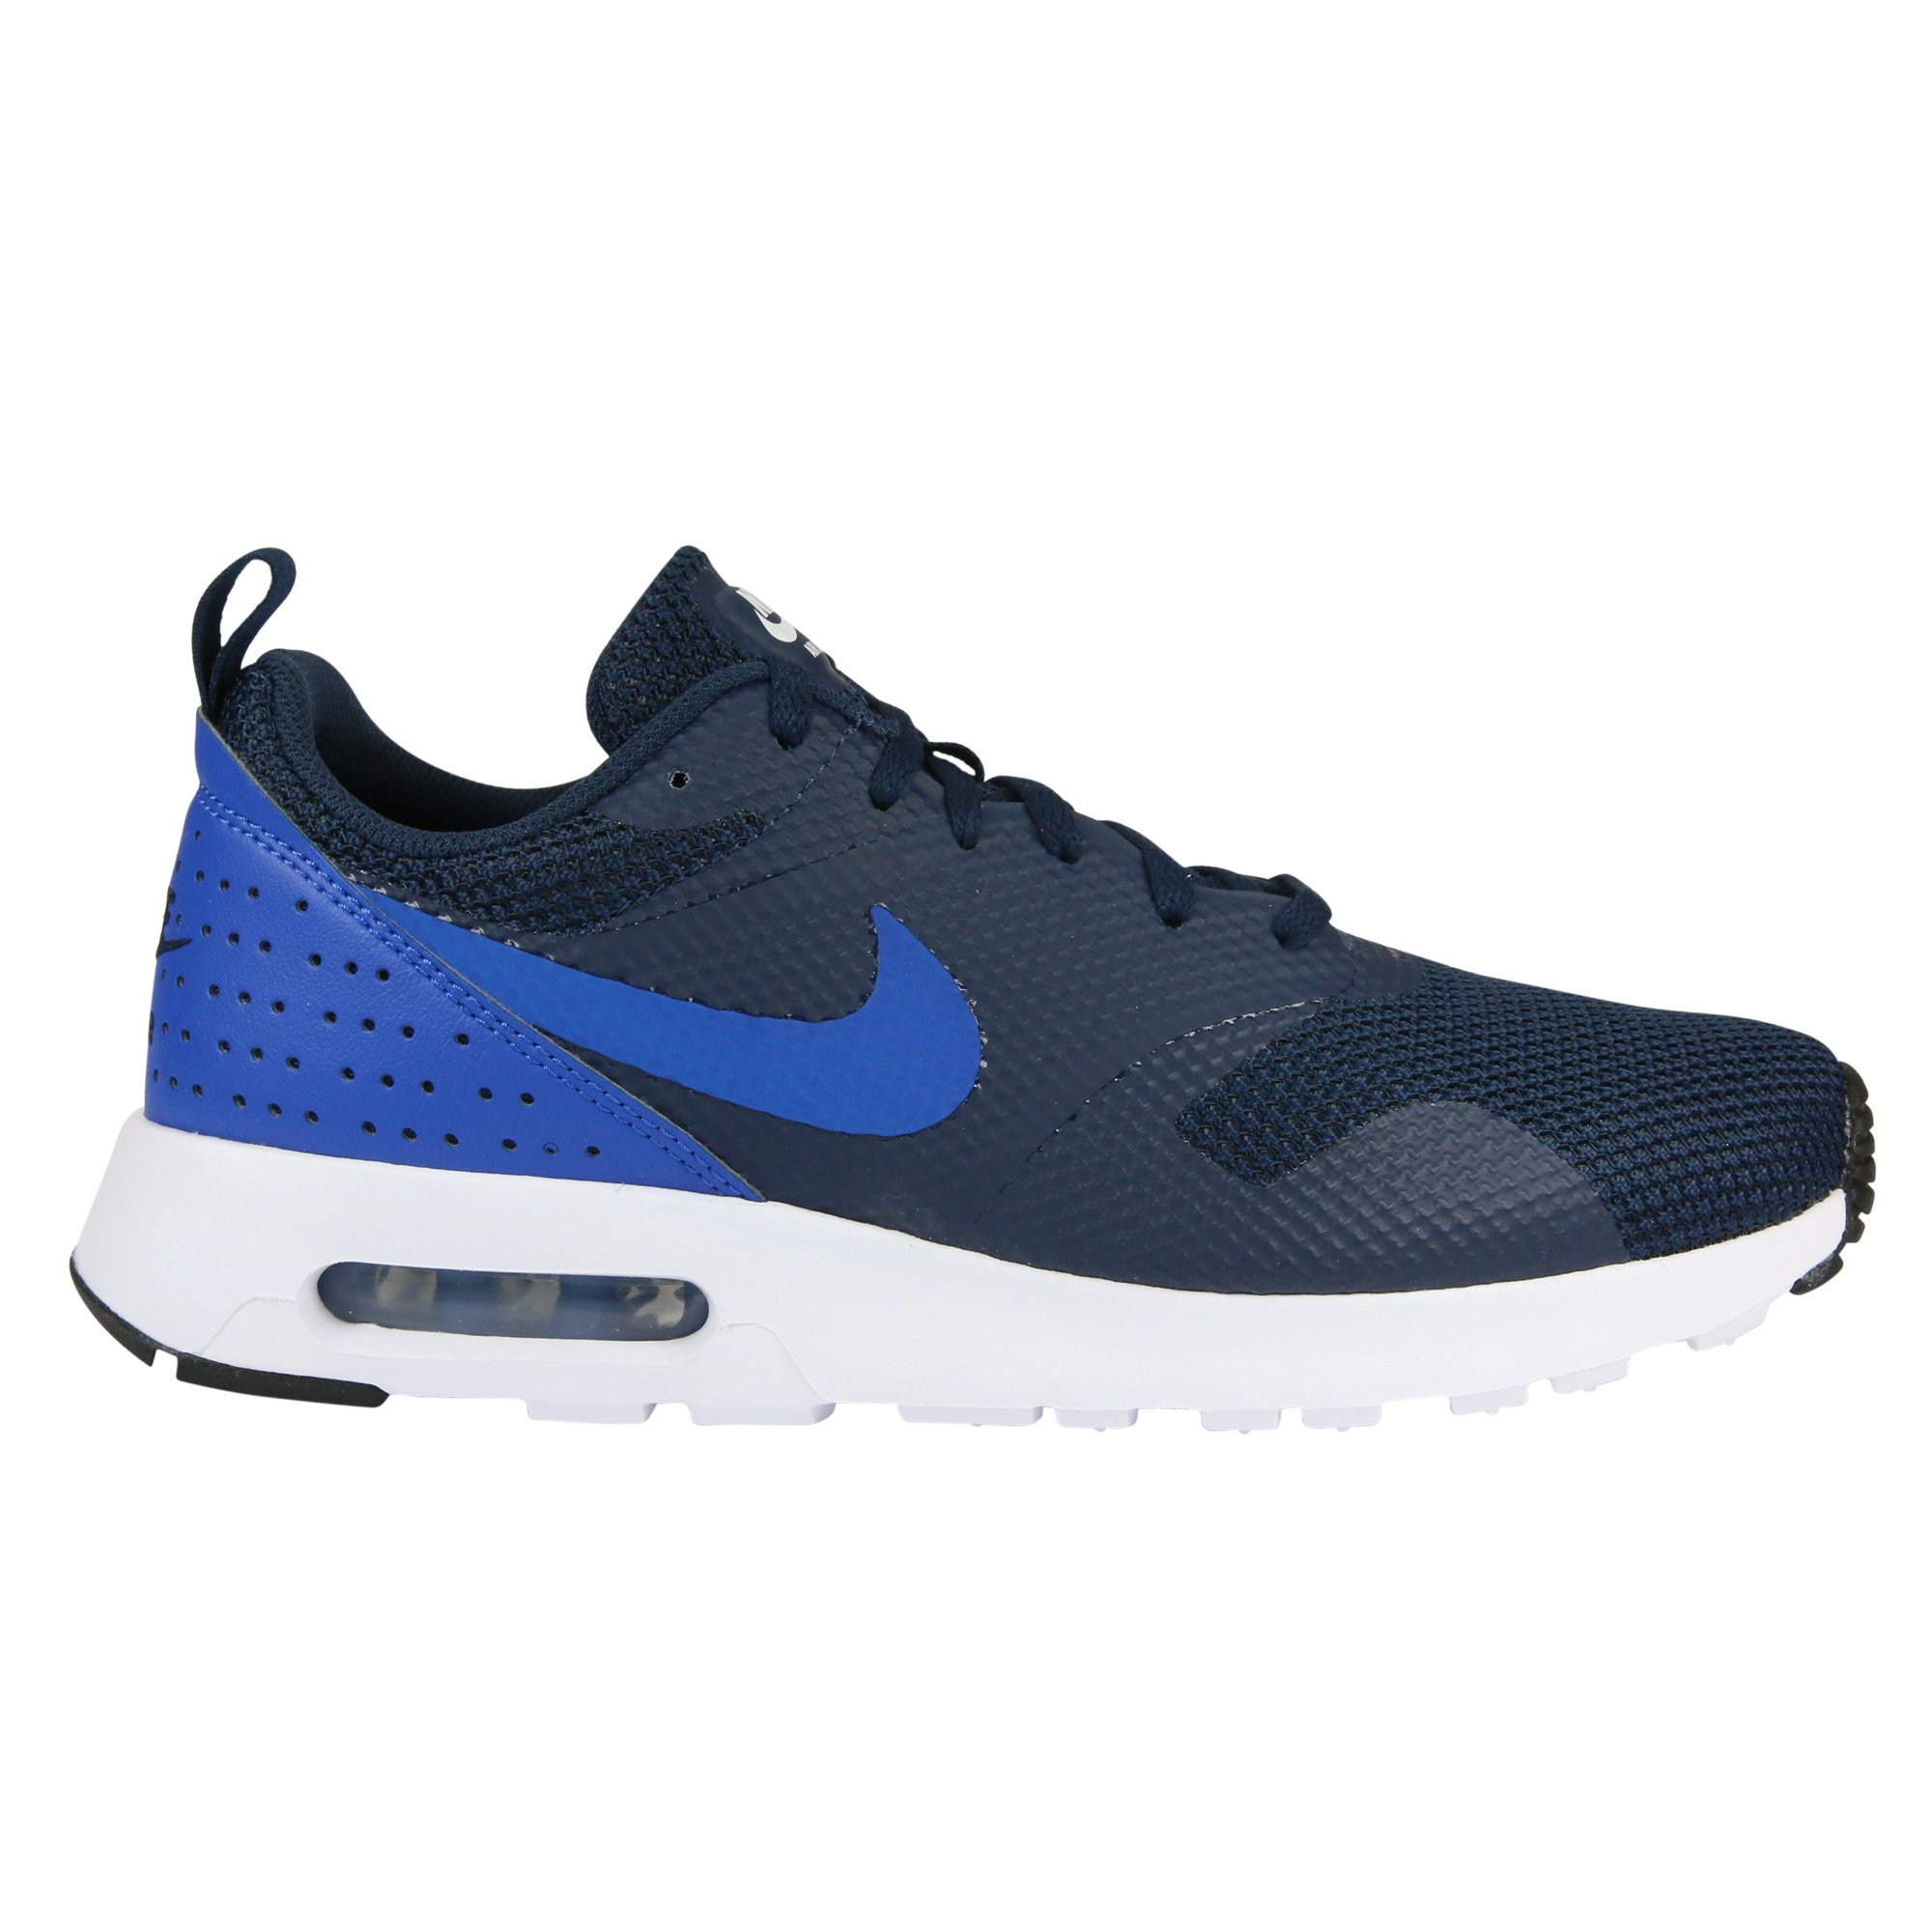 newest e545f 905ed Galleon - NIKE Men s Air Max Tavas Running Shoe (705149-407) -  Obsidian Hyper Cobalt Black (US 8)